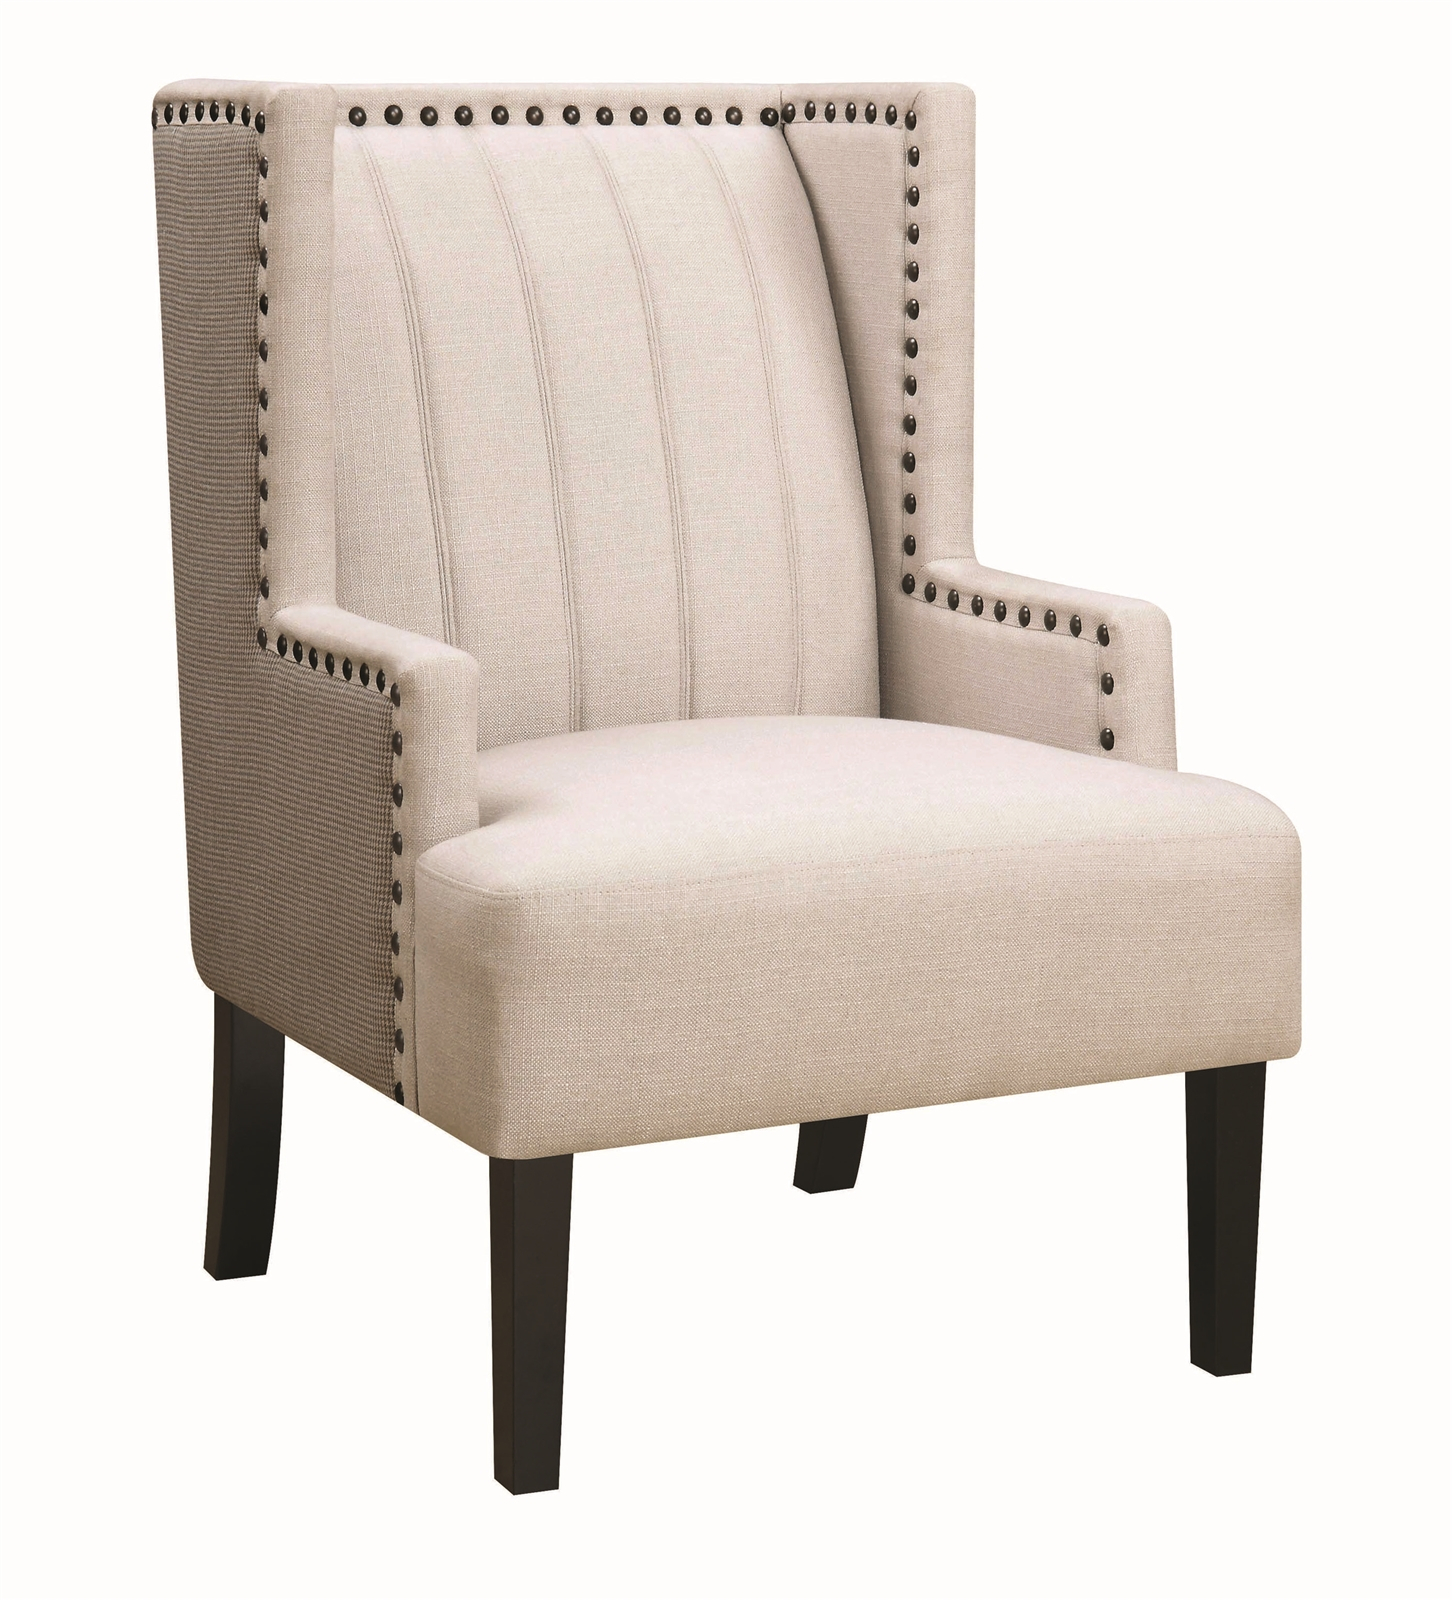 Chile Cream & Gray Linen Accent Chair Within Chiles Linen Side Chairs (View 3 of 15)